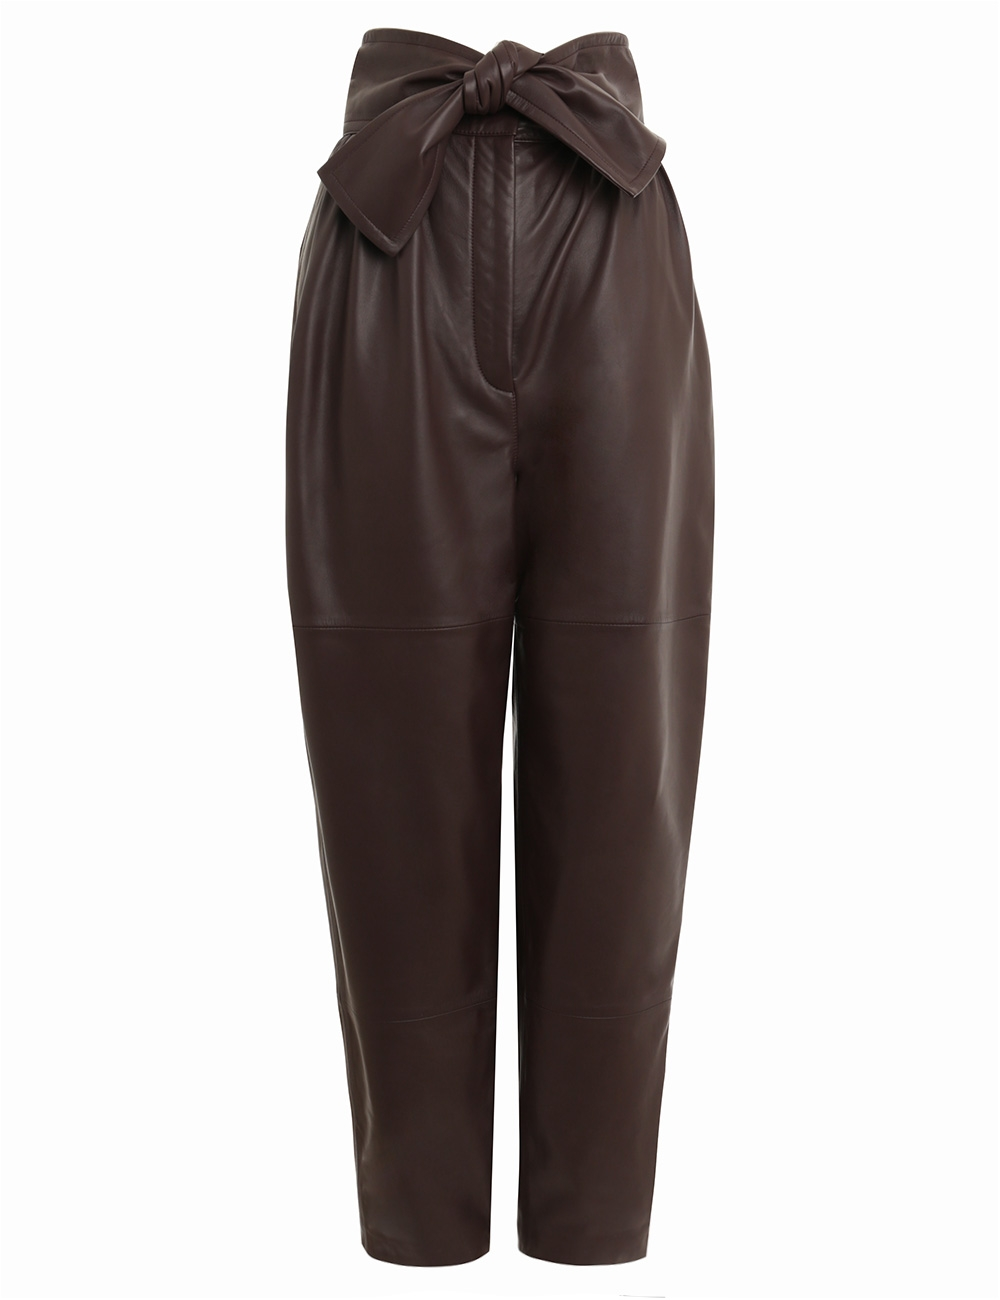 Resistance Leather Obi Pant